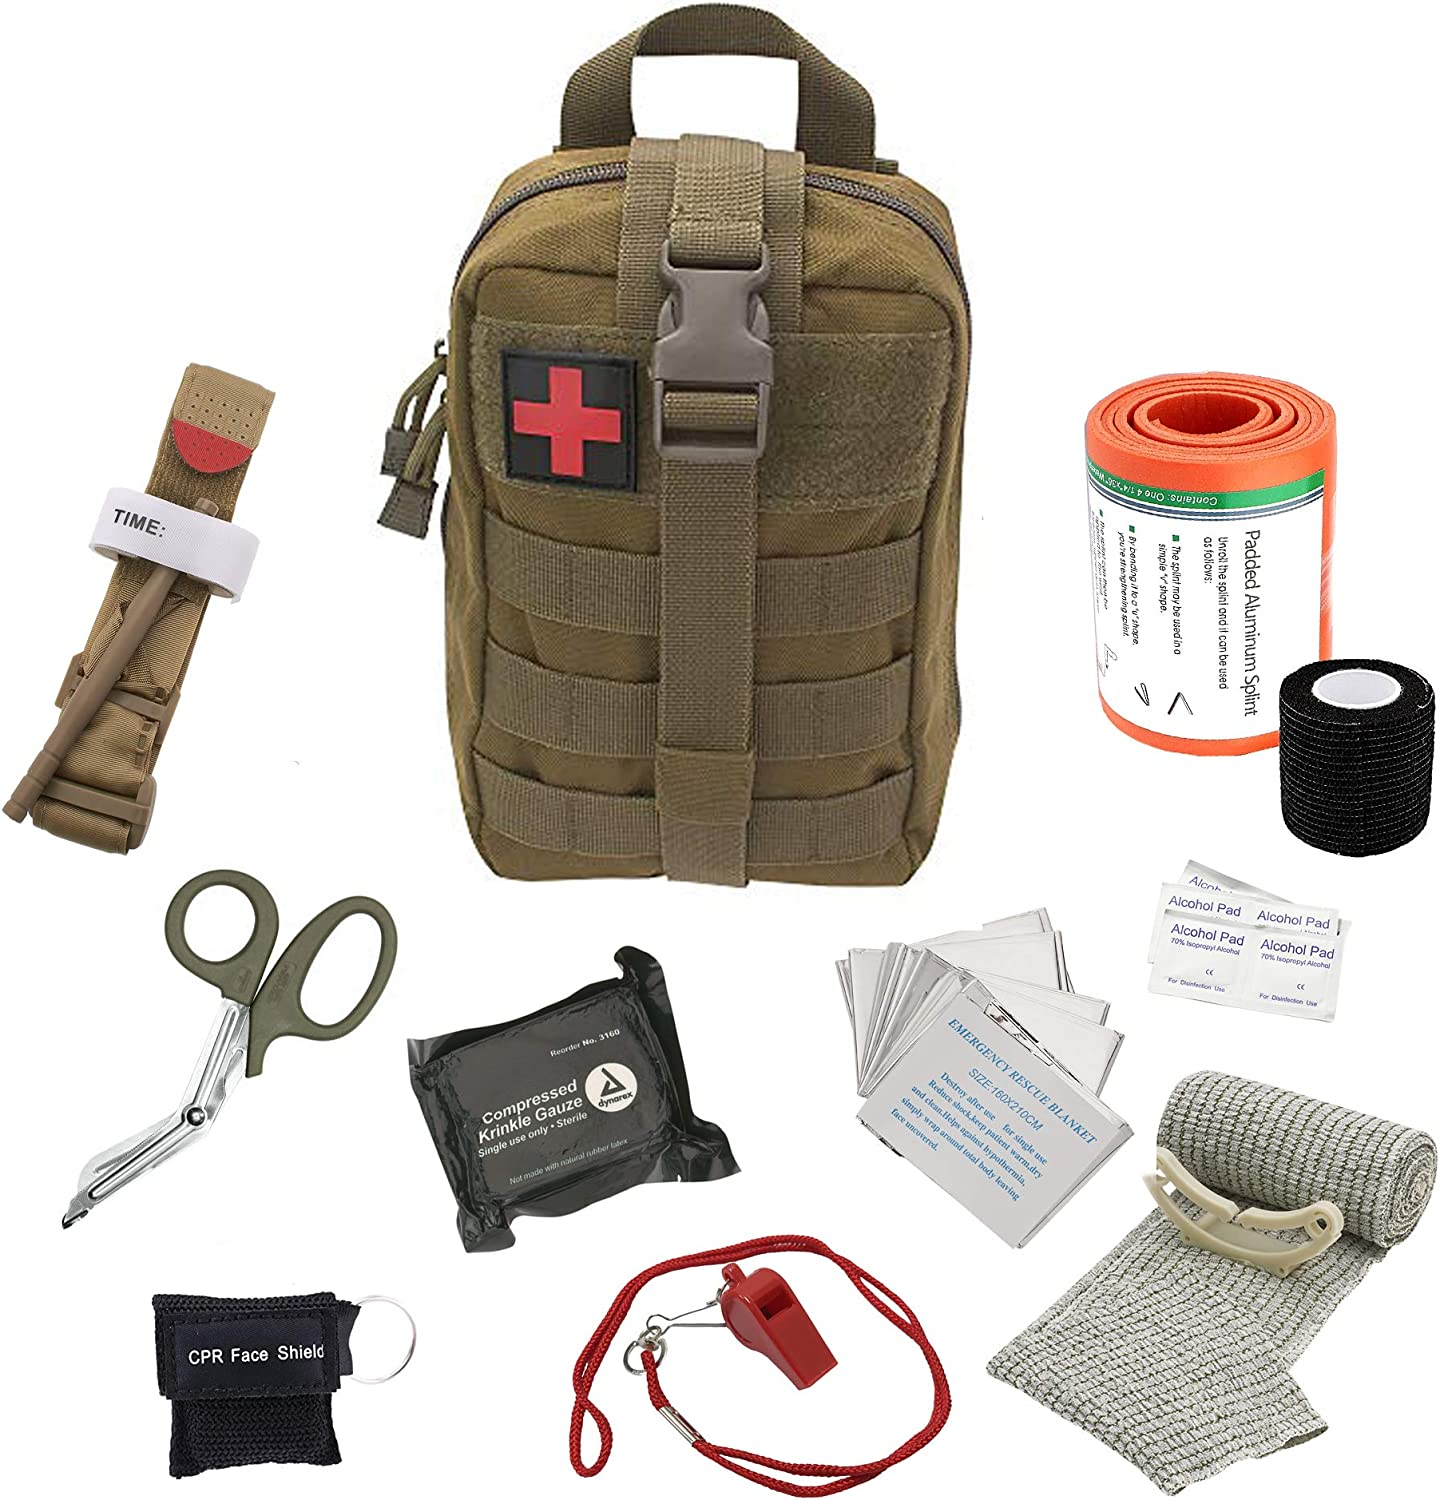 ASA Techmed Tactical First Aid Emergency Kit MOLLE Pouch Combat Action Tourniquet IFAK Compression Dressing- EMT Survival Kit for Travel Car Outdoor Camping